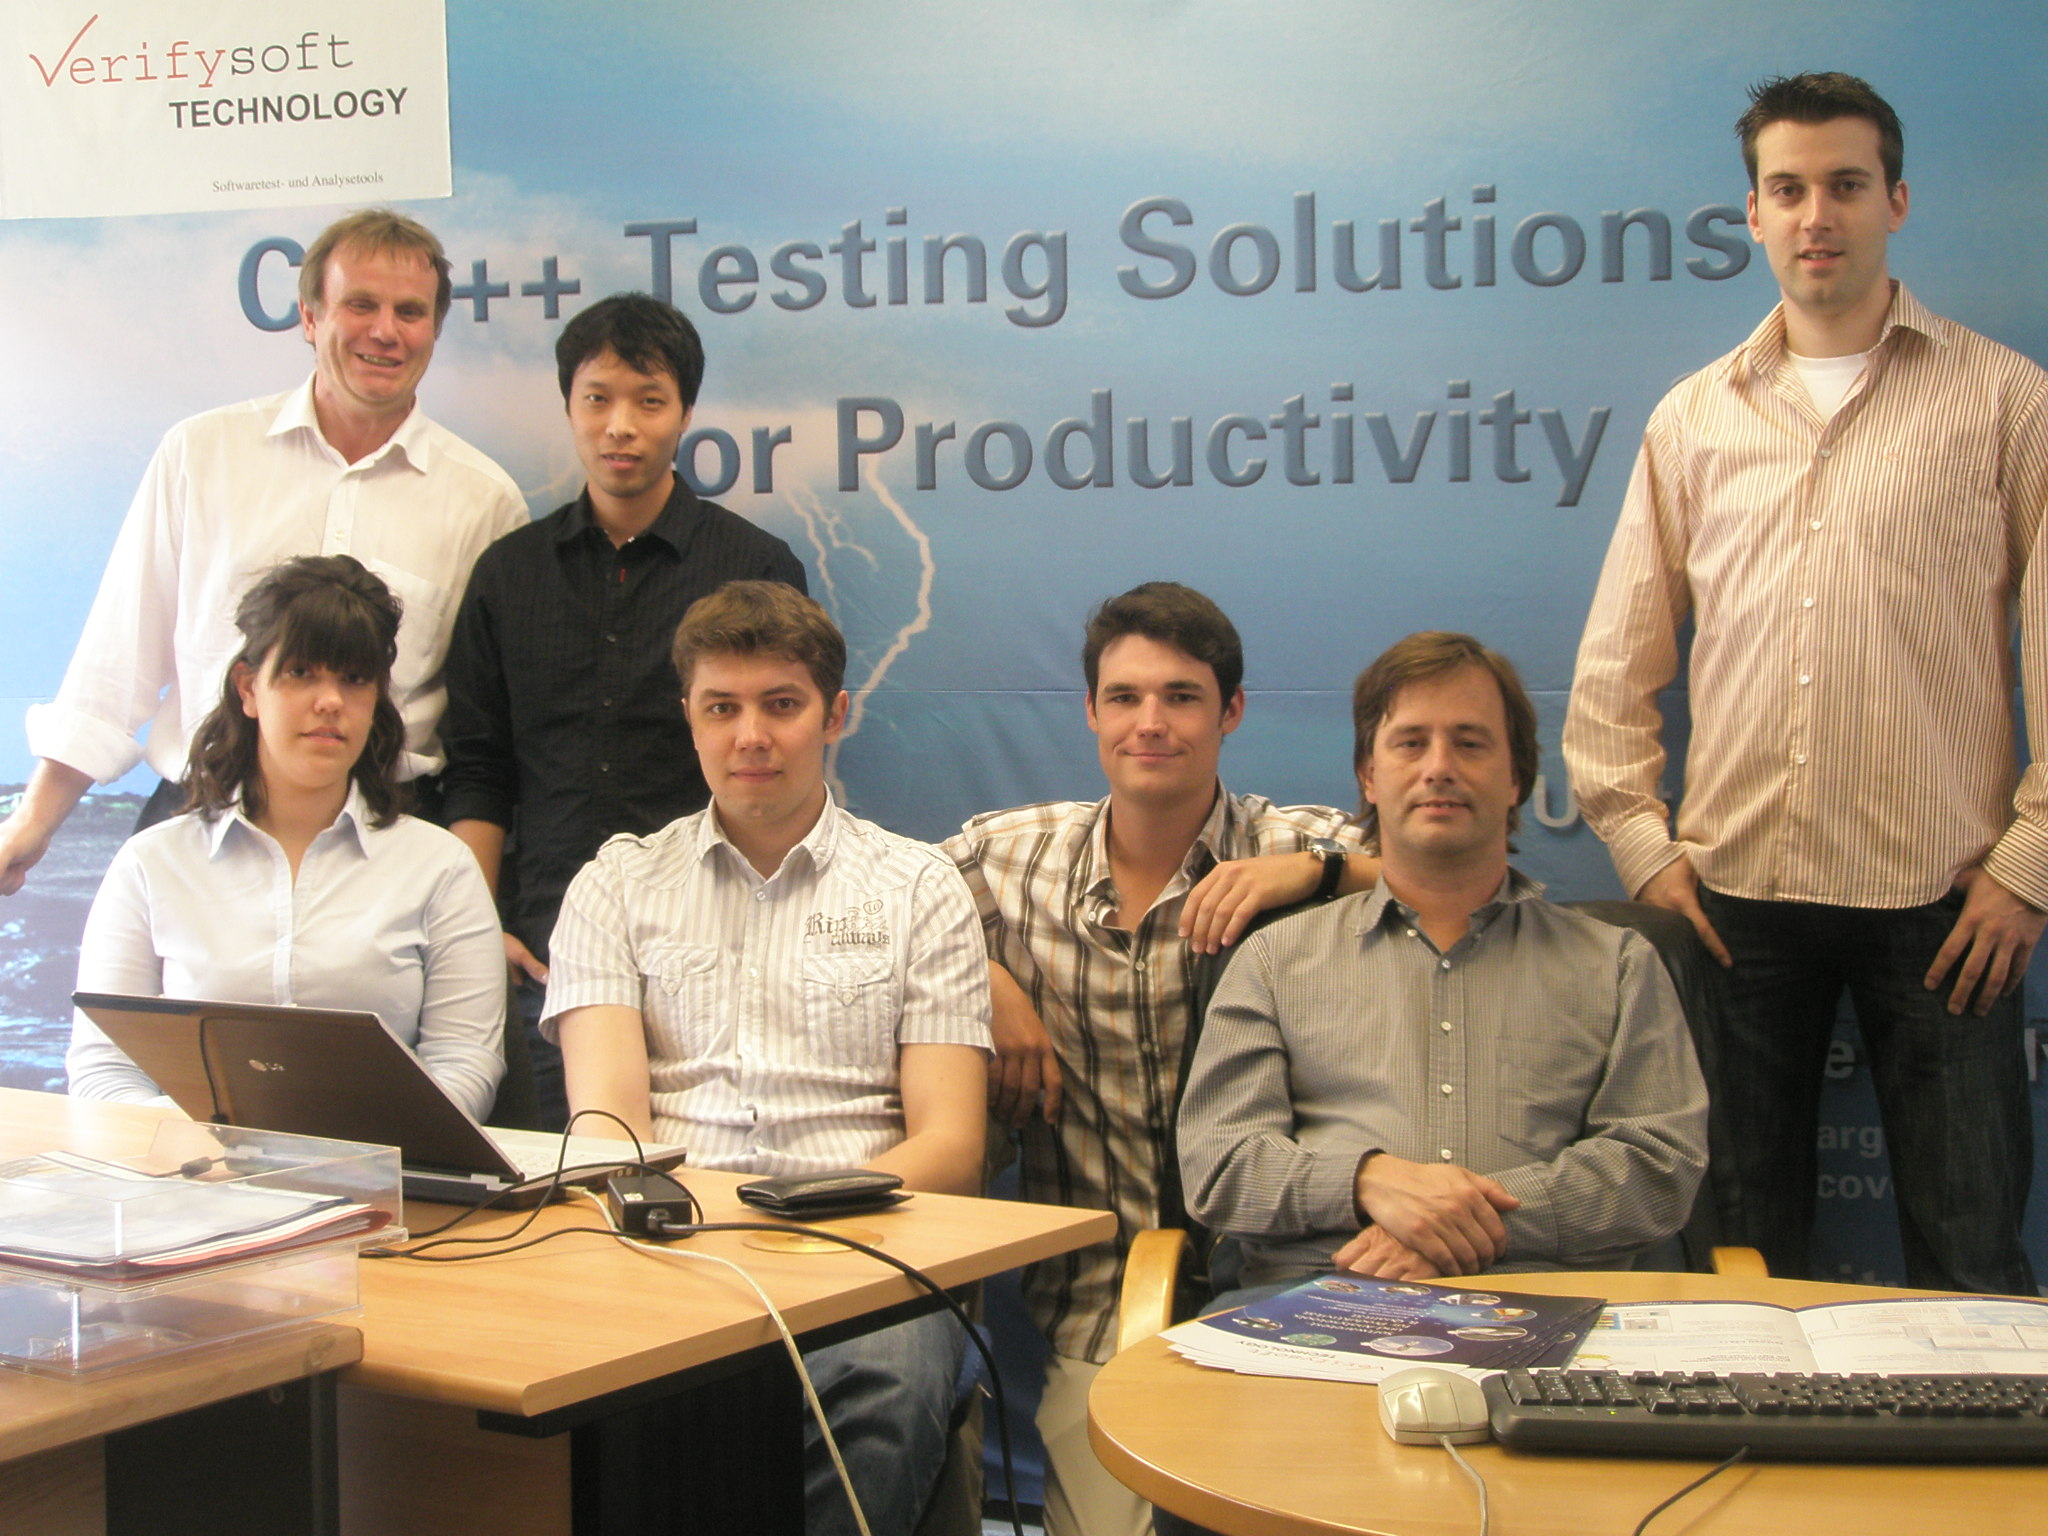 Verifysoft-Team 2009